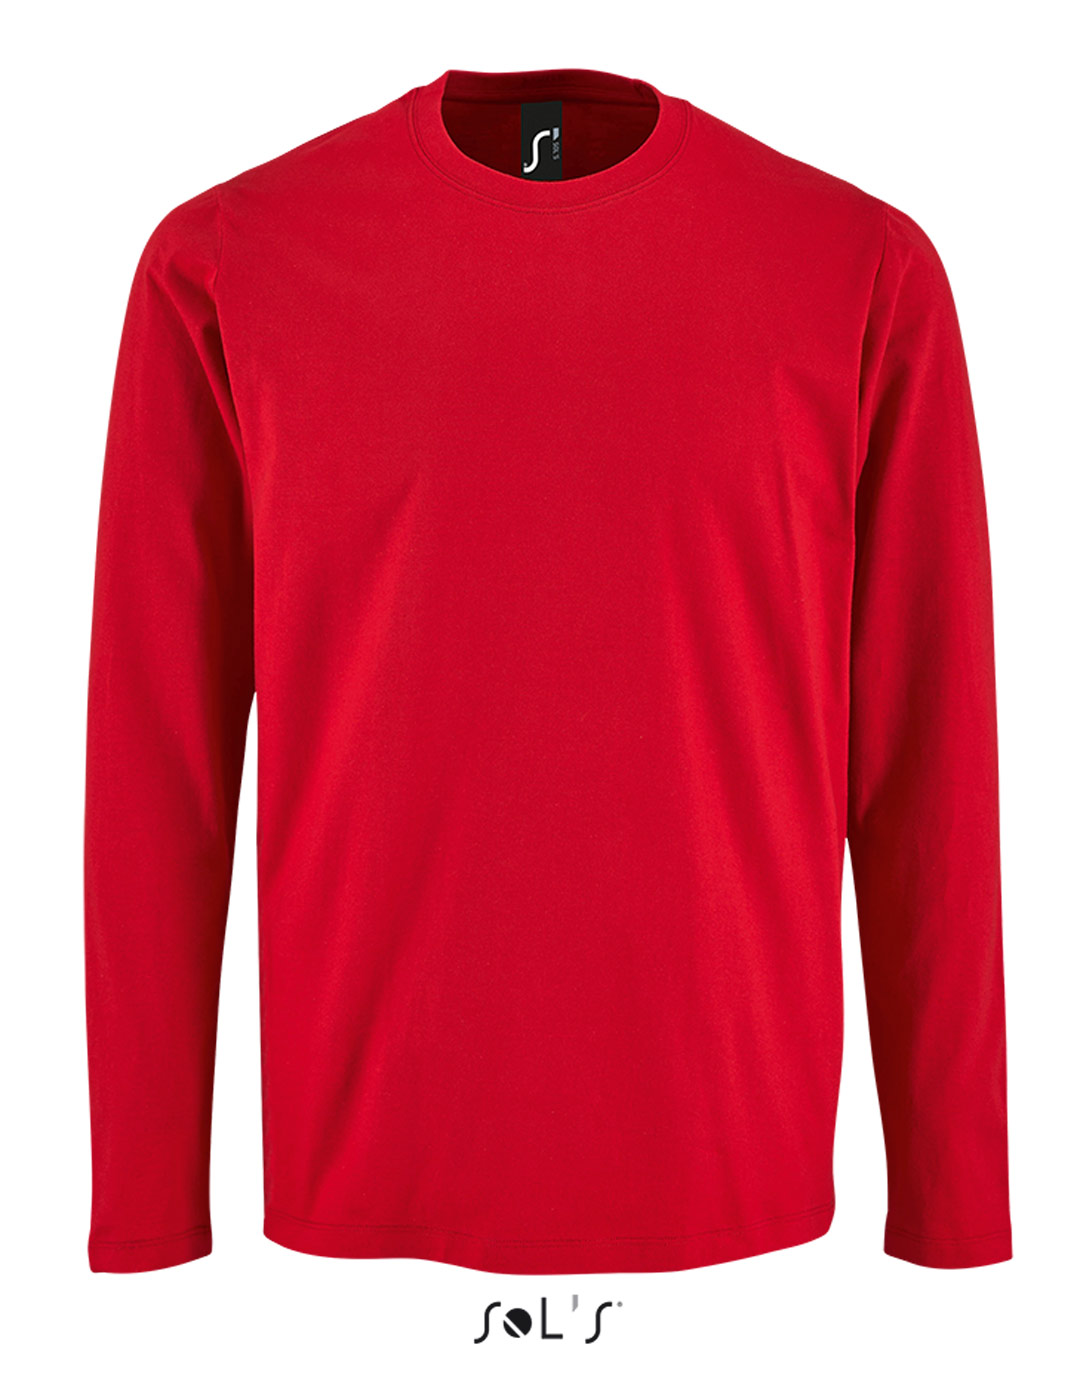 Imperial lsl men 02074 red a